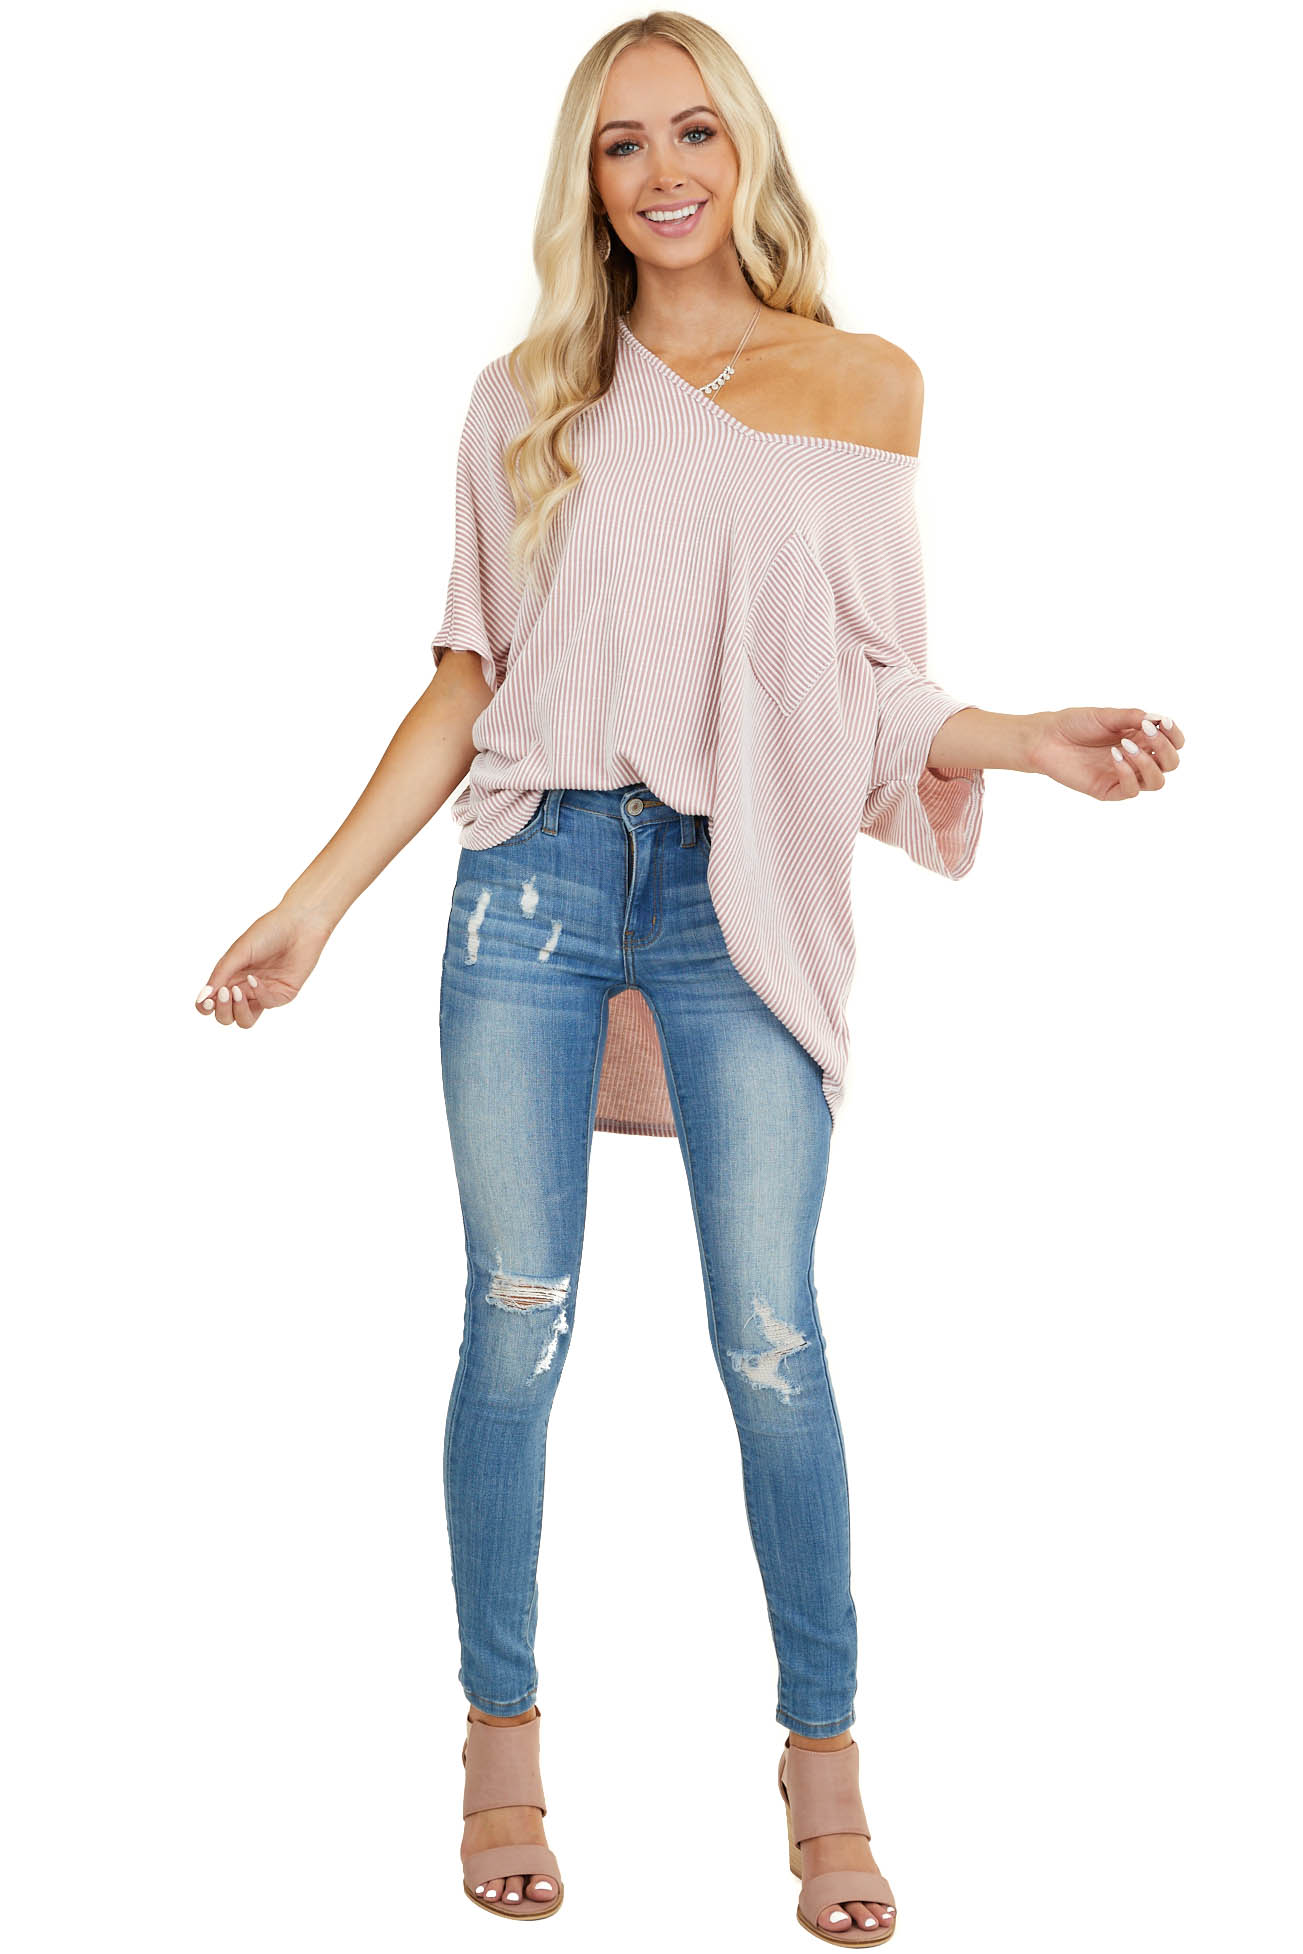 Dusty Blush Top with Textured Stripes and Front Pocket